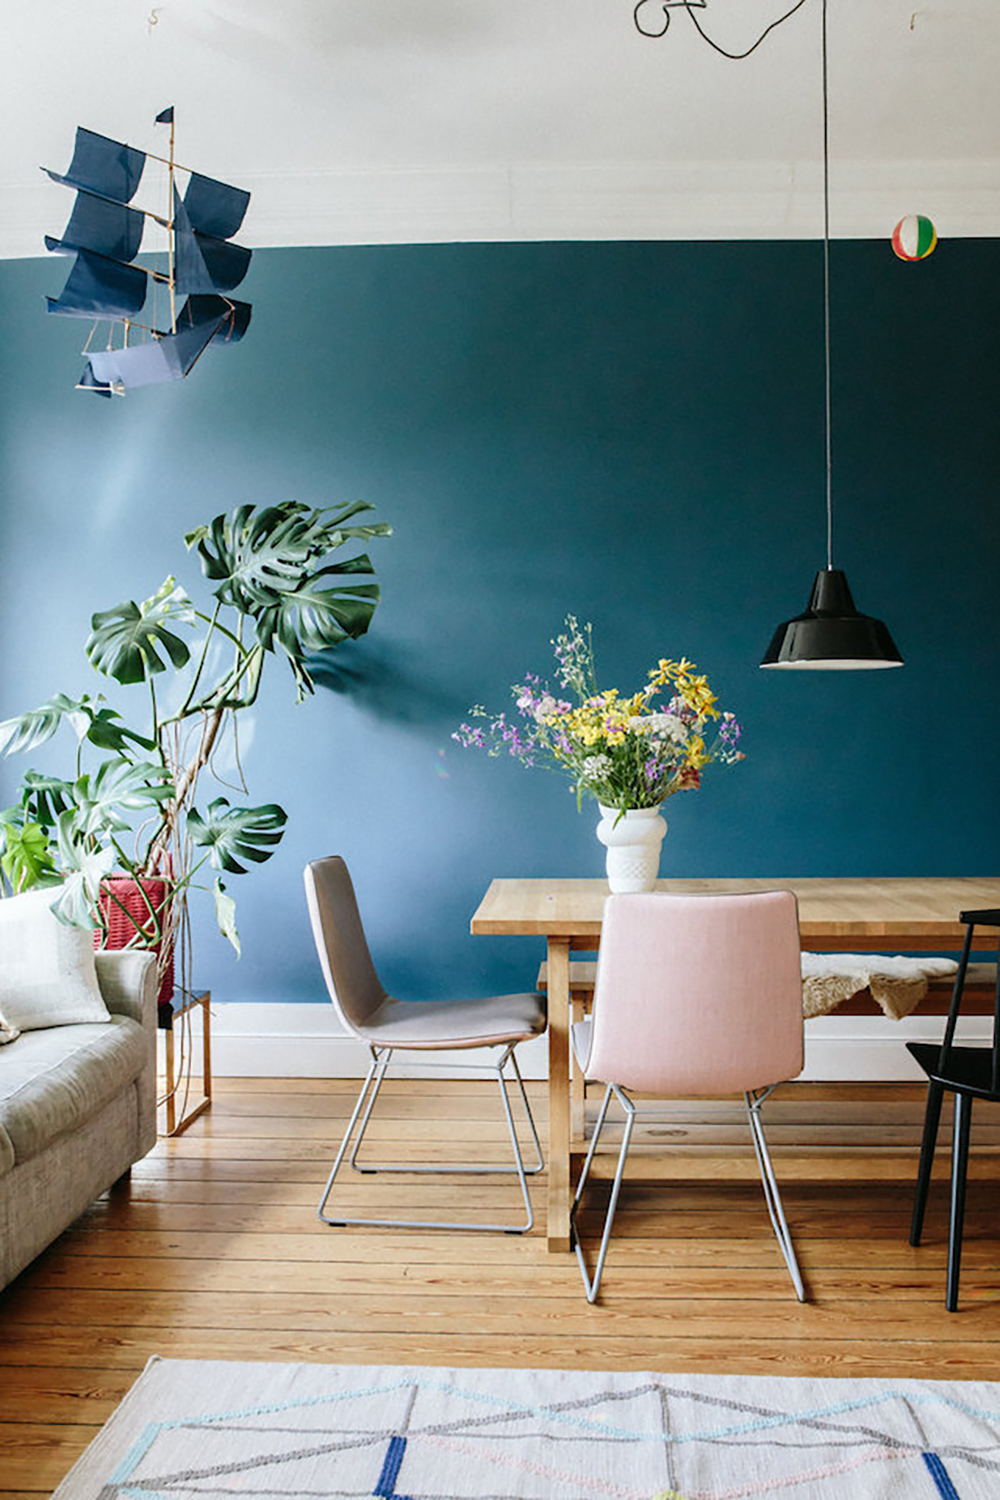 Mid blue shade in the living room is very elegant with the parquet, colourful accessories and bright furniture - 35 ideas for blue wall colour in home decoration | Aliz's Wonderland